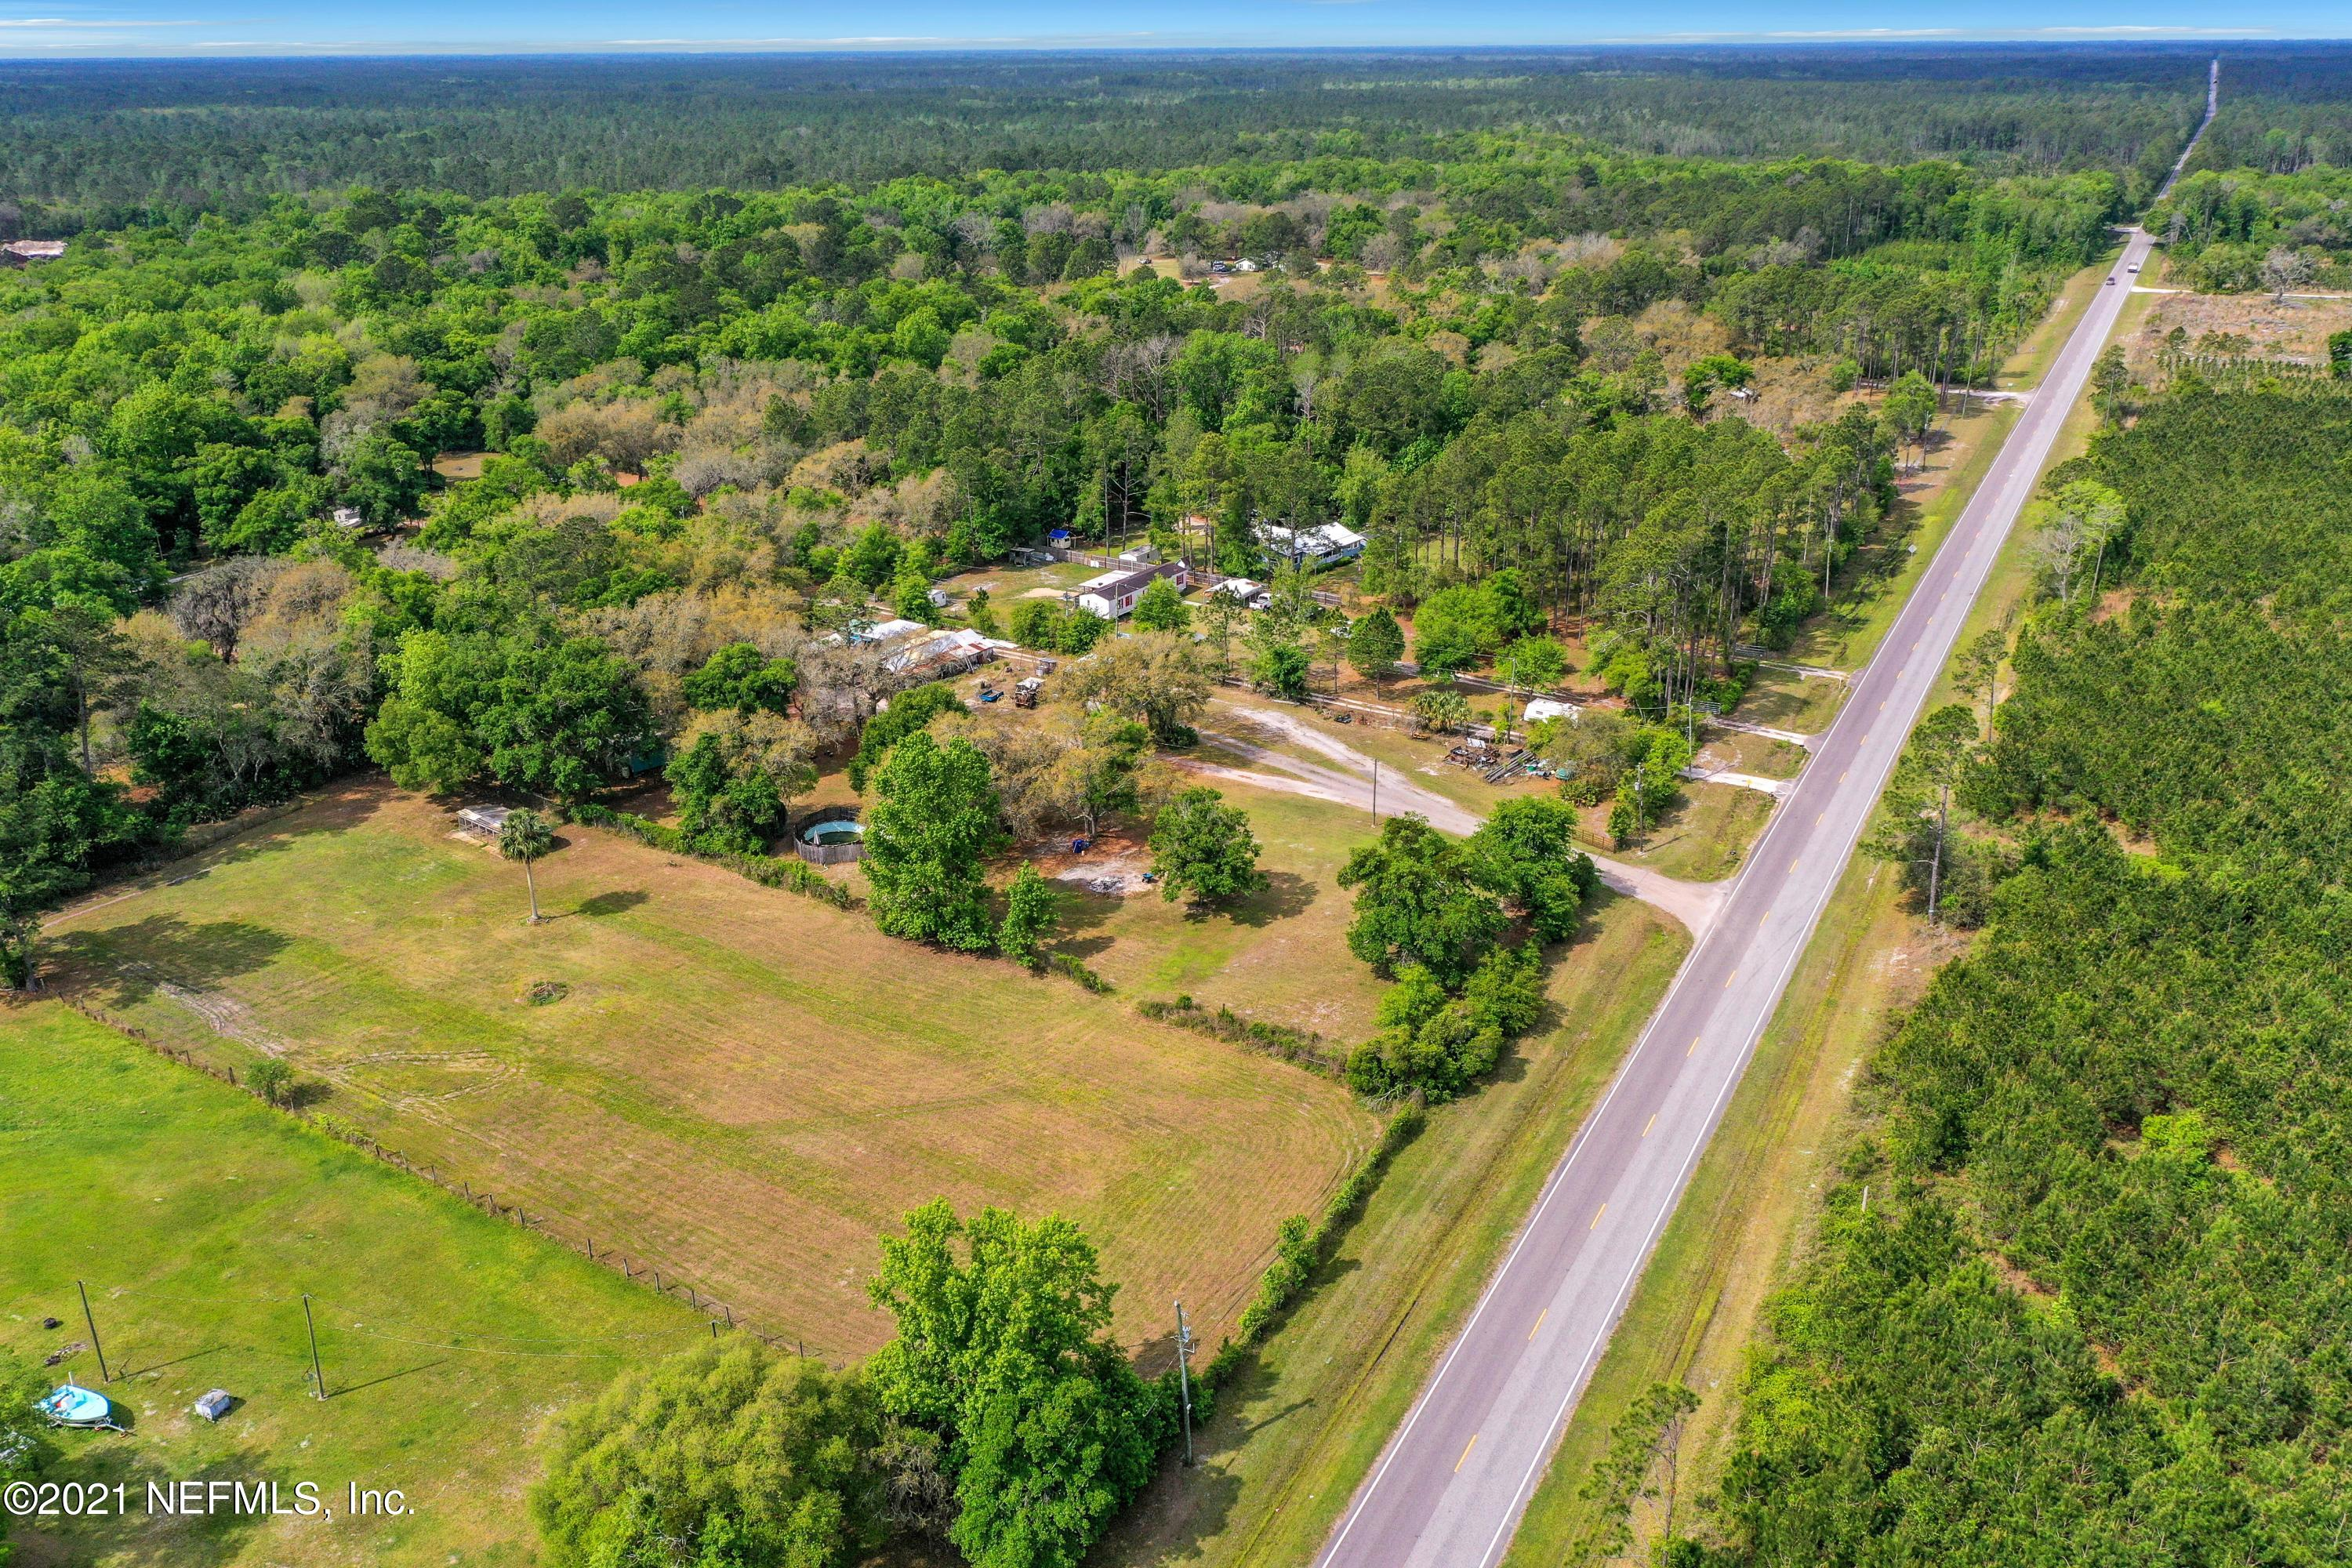 0 COUNTY ROAD 204, HASTINGS, FLORIDA 32145, ,Vacant land,For sale,COUNTY ROAD 204,1104367